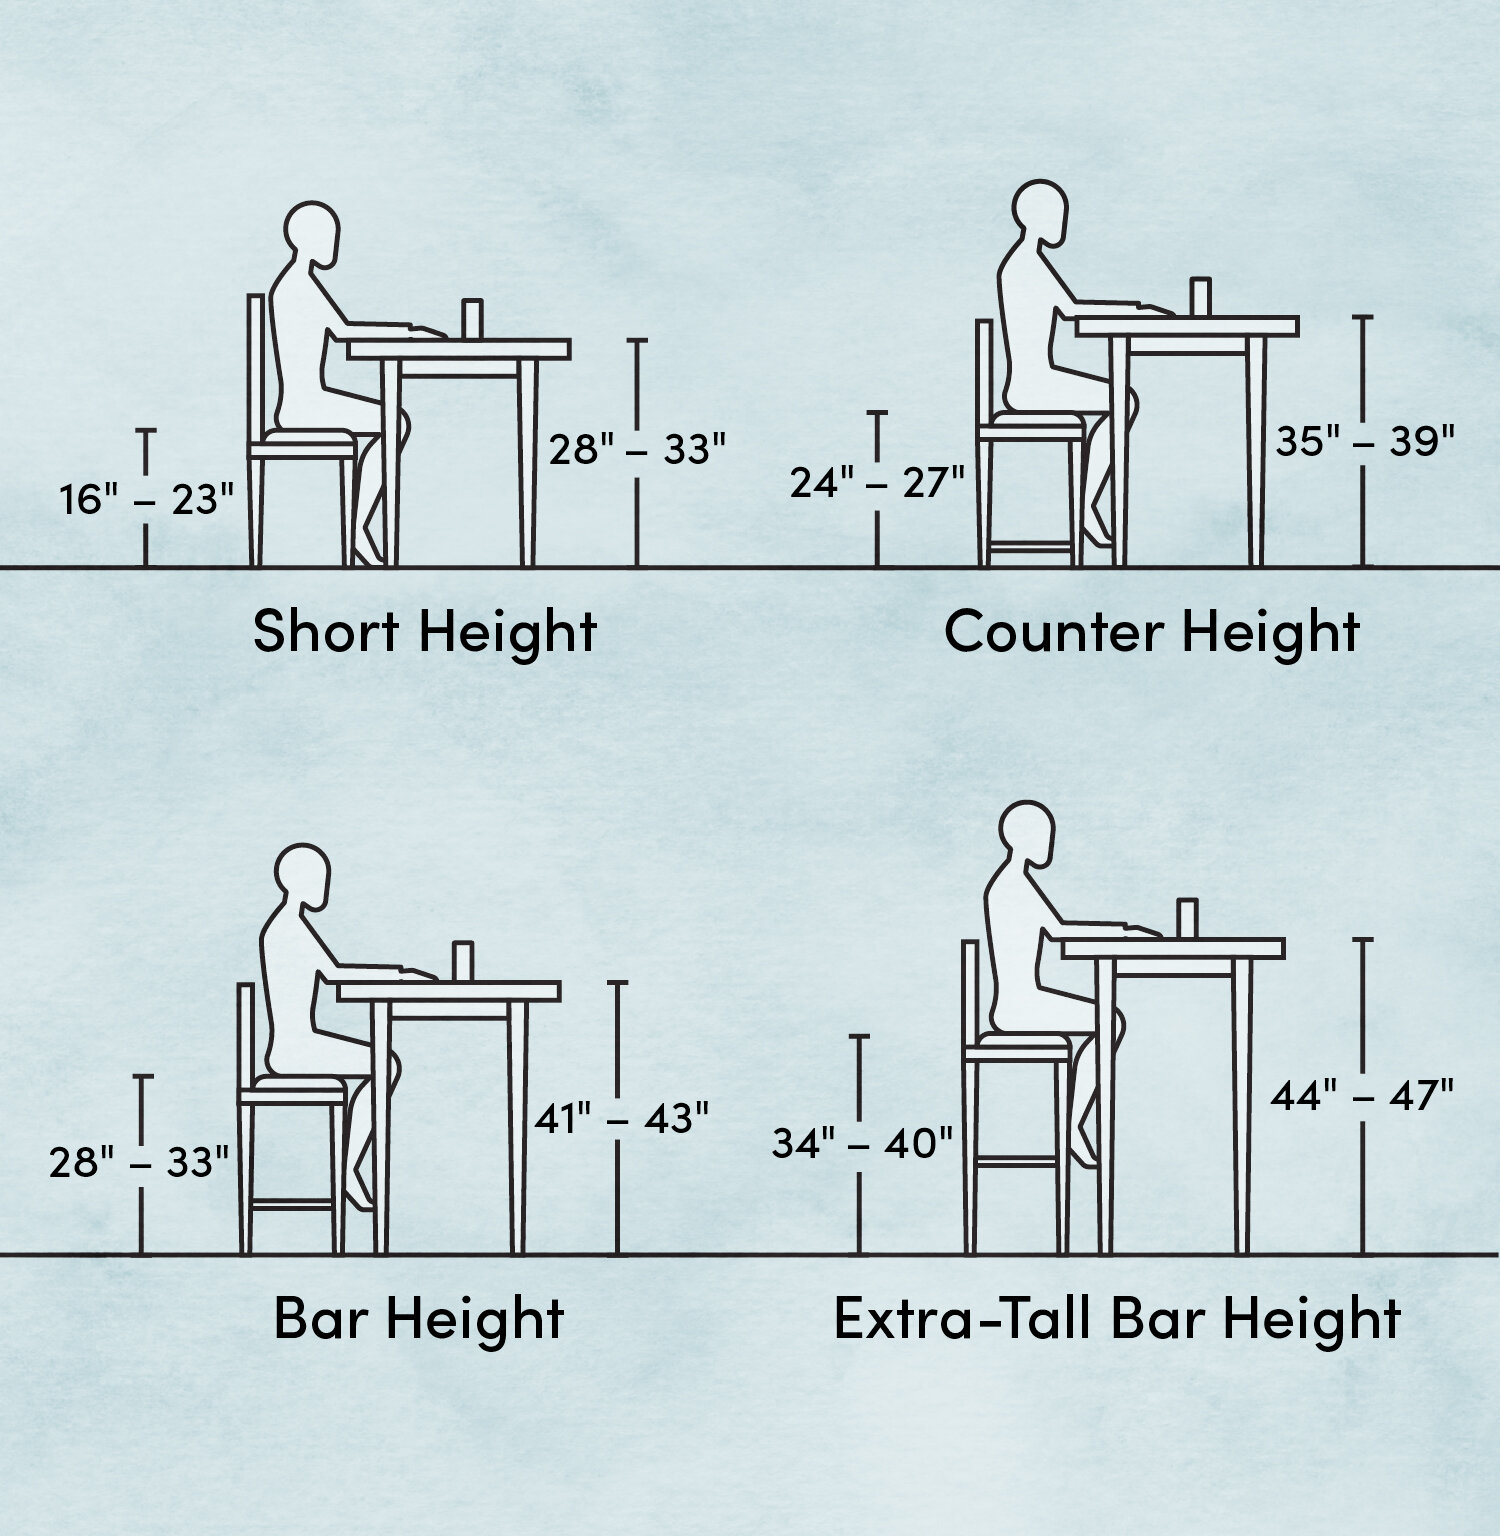 Wondrous Bar Stool Dimensions How To Choose The Right Ones Wayfair Unemploymentrelief Wooden Chair Designs For Living Room Unemploymentrelieforg